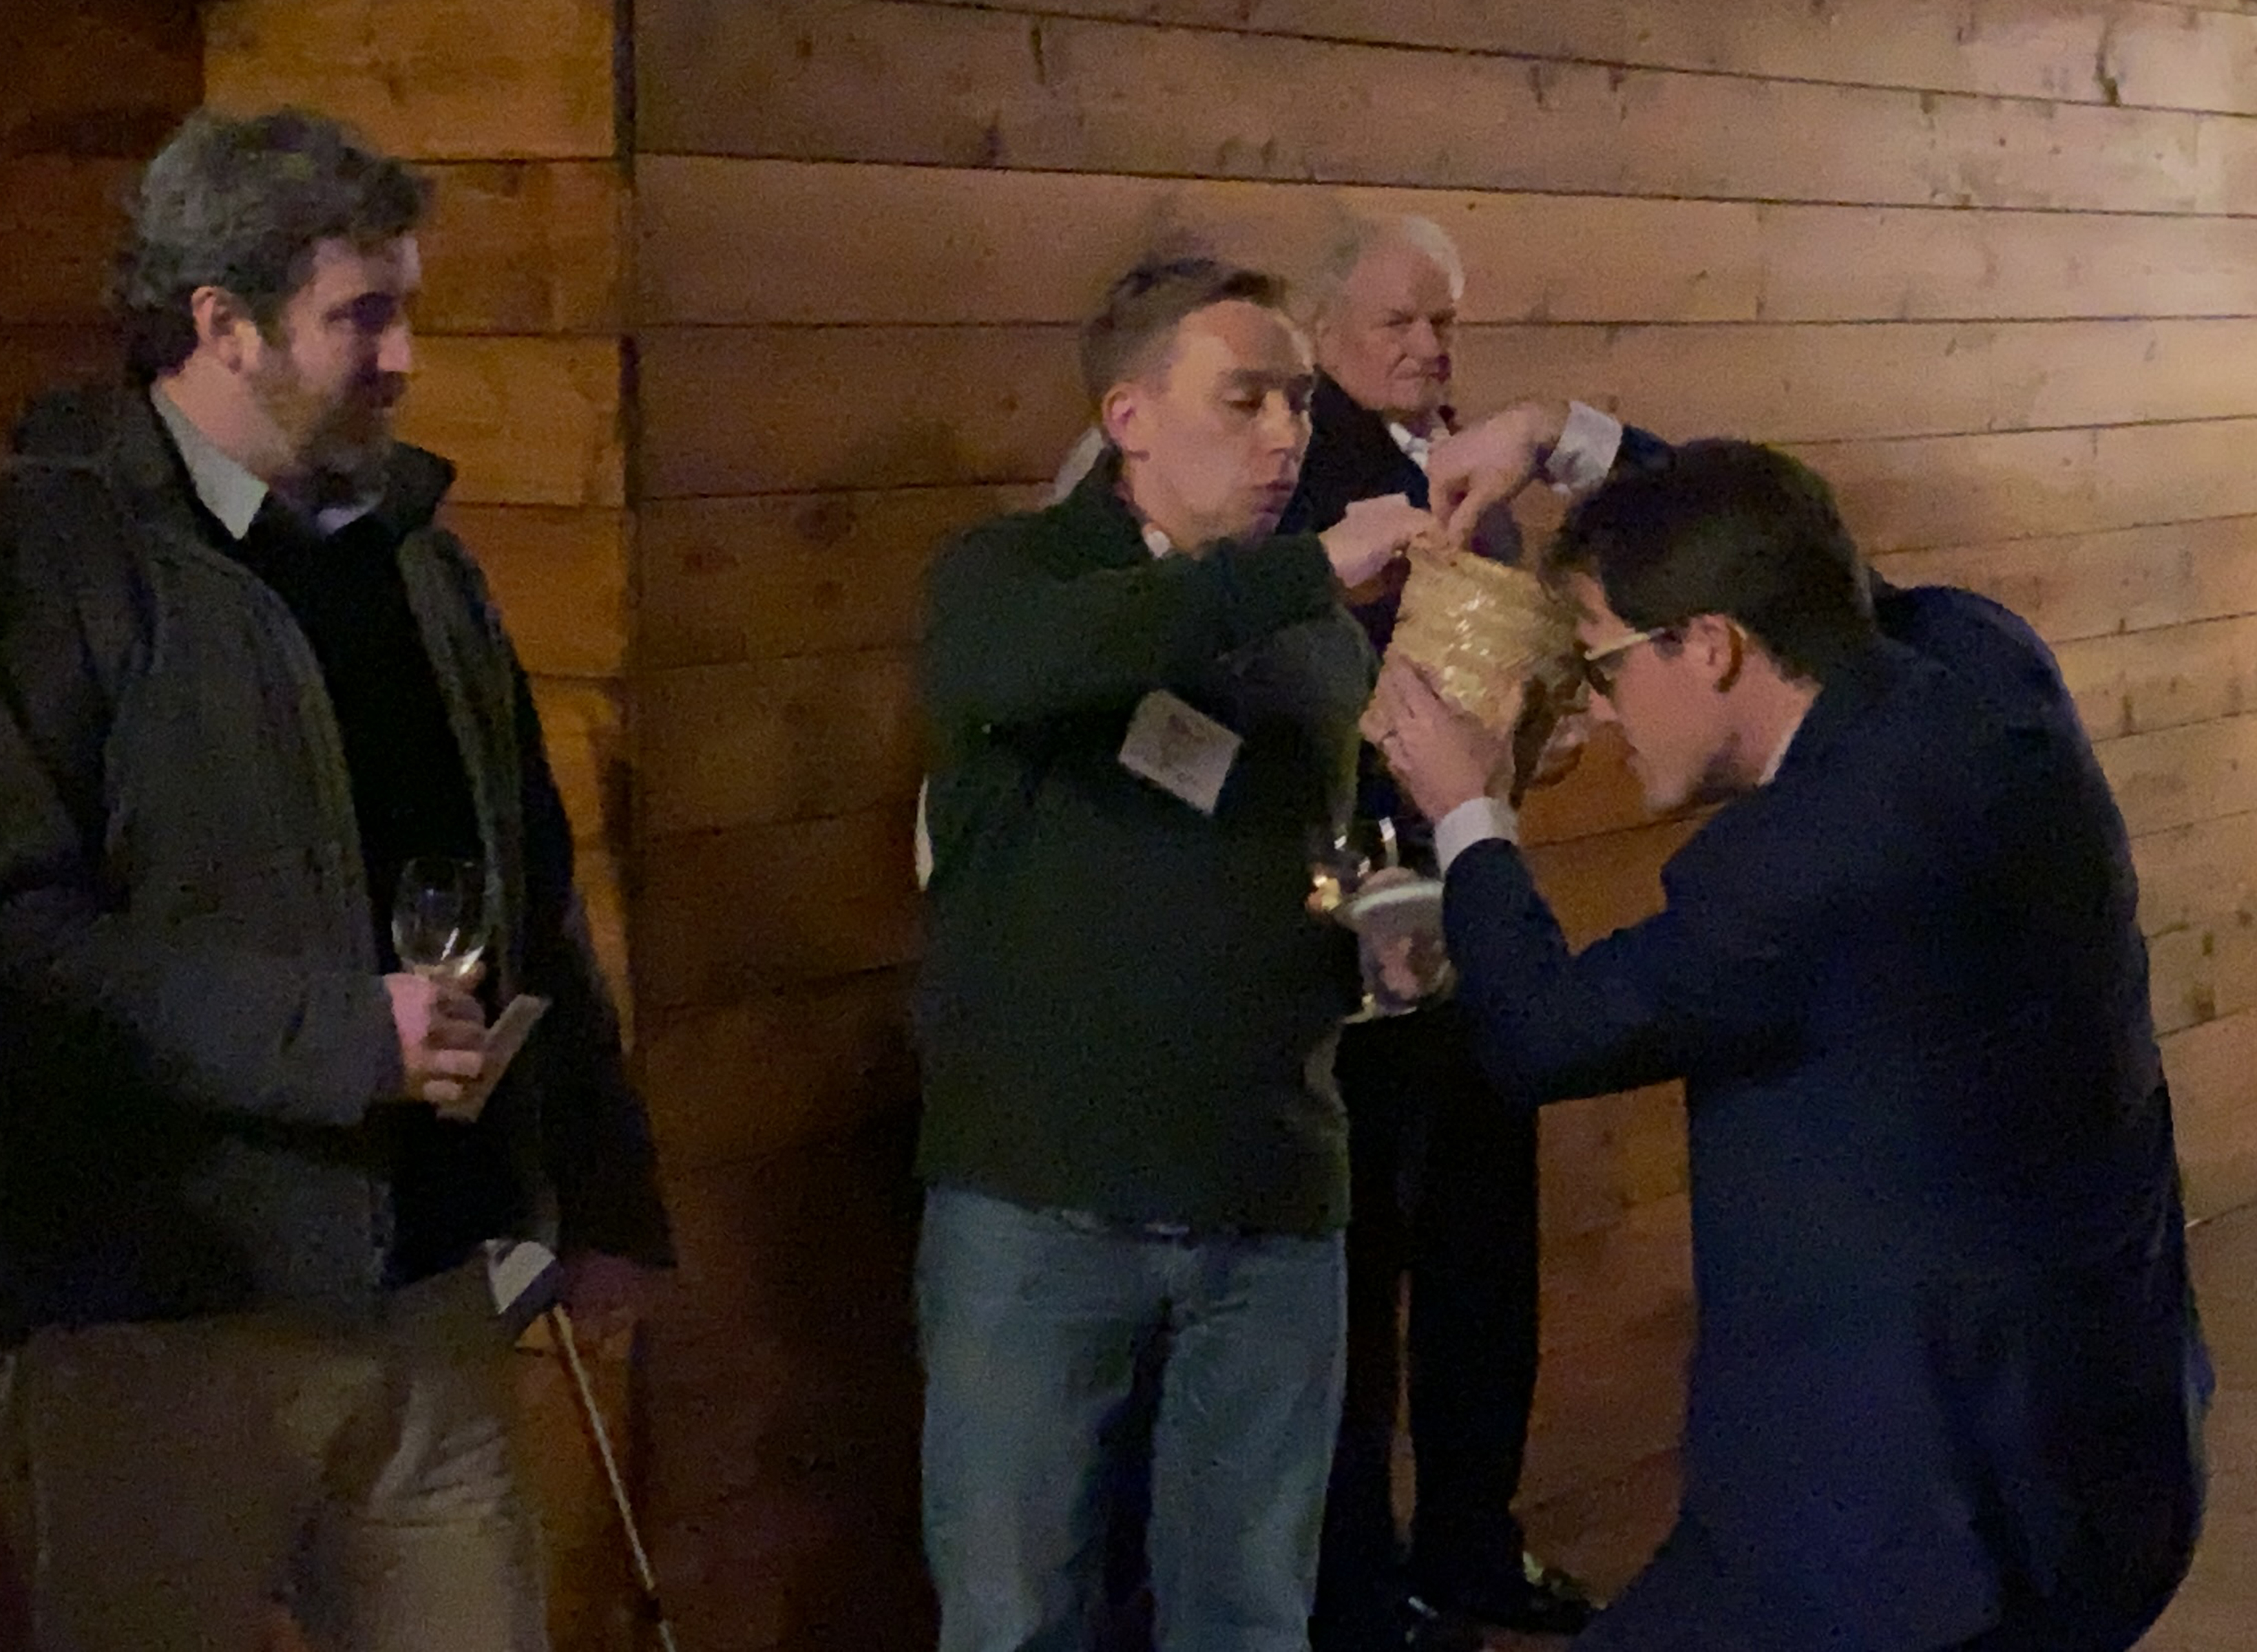 Omaha Bar Association Executive Director Dave Sommers selects the winner of a raffle prize at the OBA Wine Tasting event Friday, Jan. 24, 2020. (Photo by Scott Stewart)